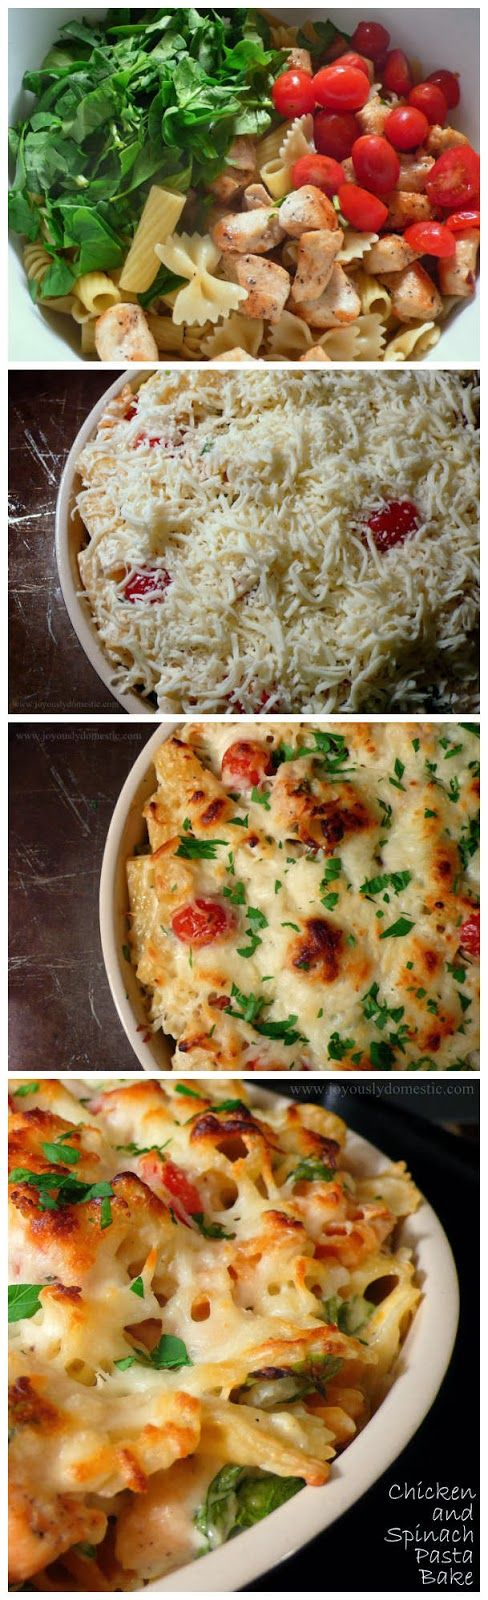 Top Food Center: Chicken and Spinach Pasta Bake